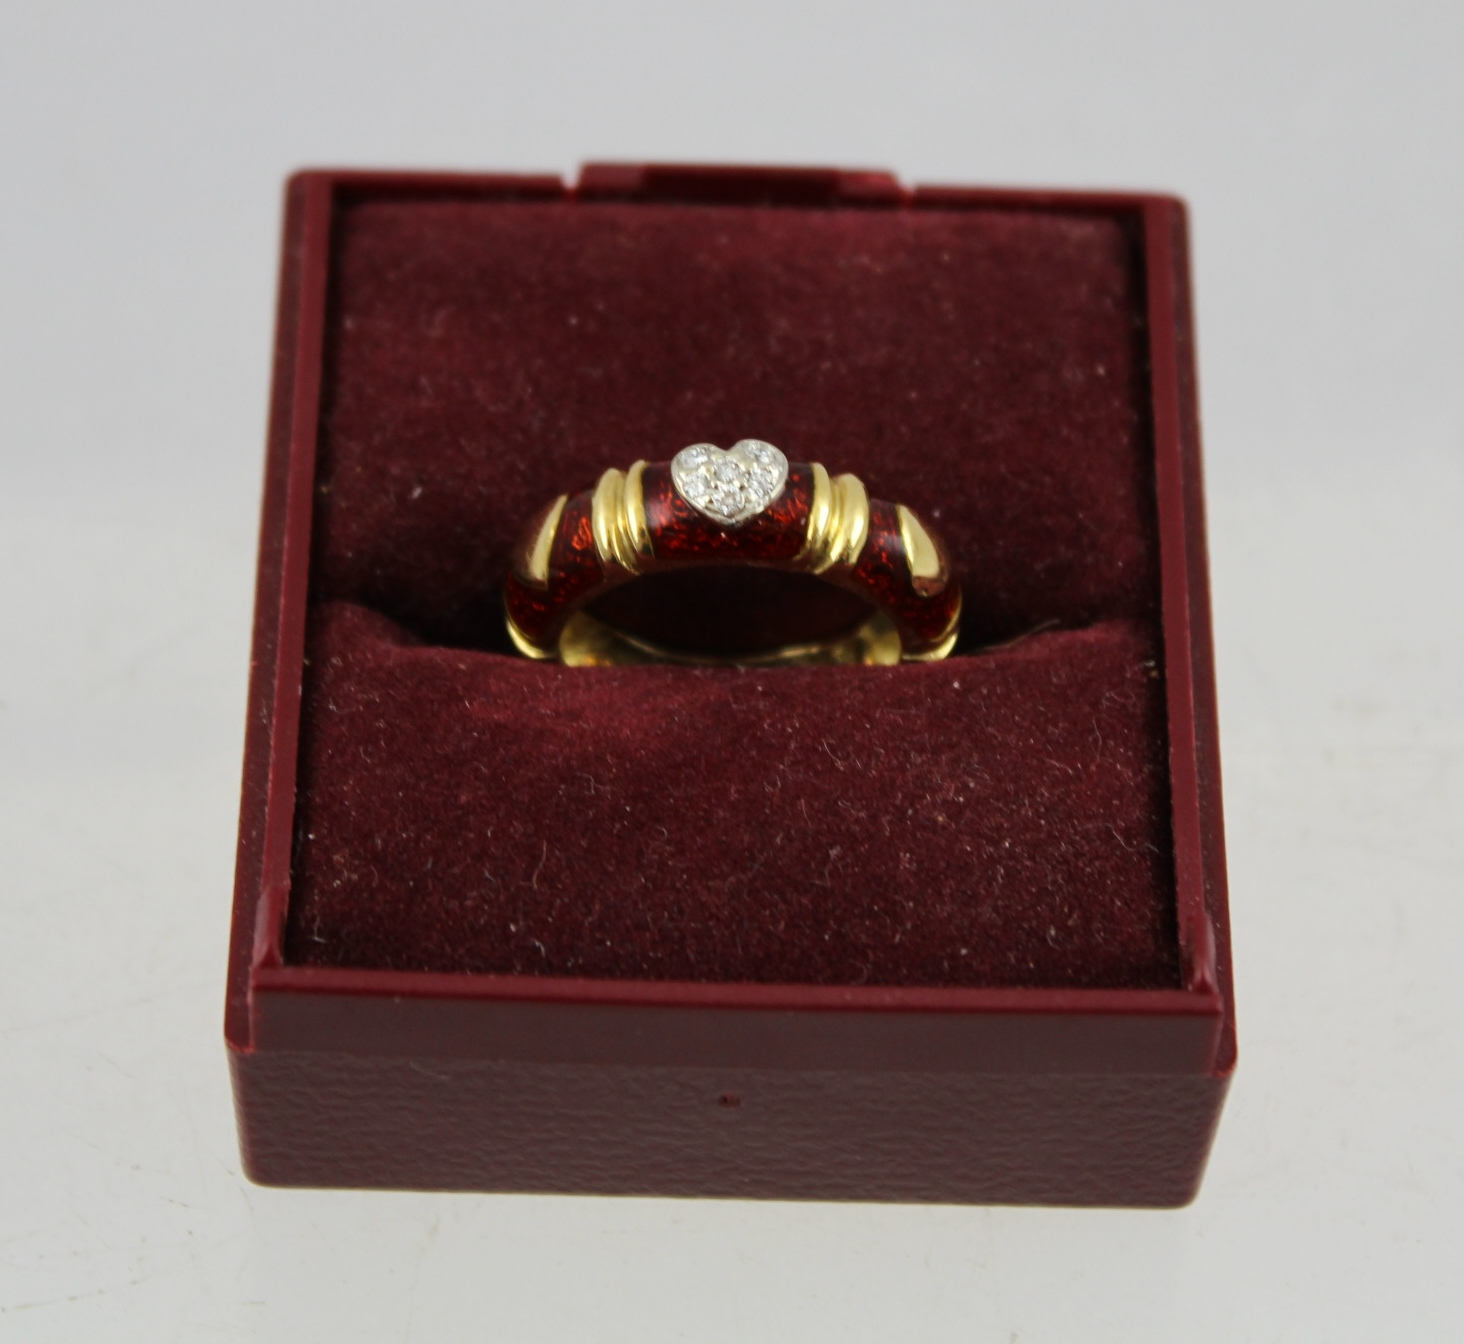 A DIAMOND AND RED ENAMEL MOUNTED FOREIGN GOLD COLOURED METAL ETERNITY RING, the top set with a heart of six small diamonds and flanked by gold hearts in the red enamel, stamped .750 (tested), size K tight